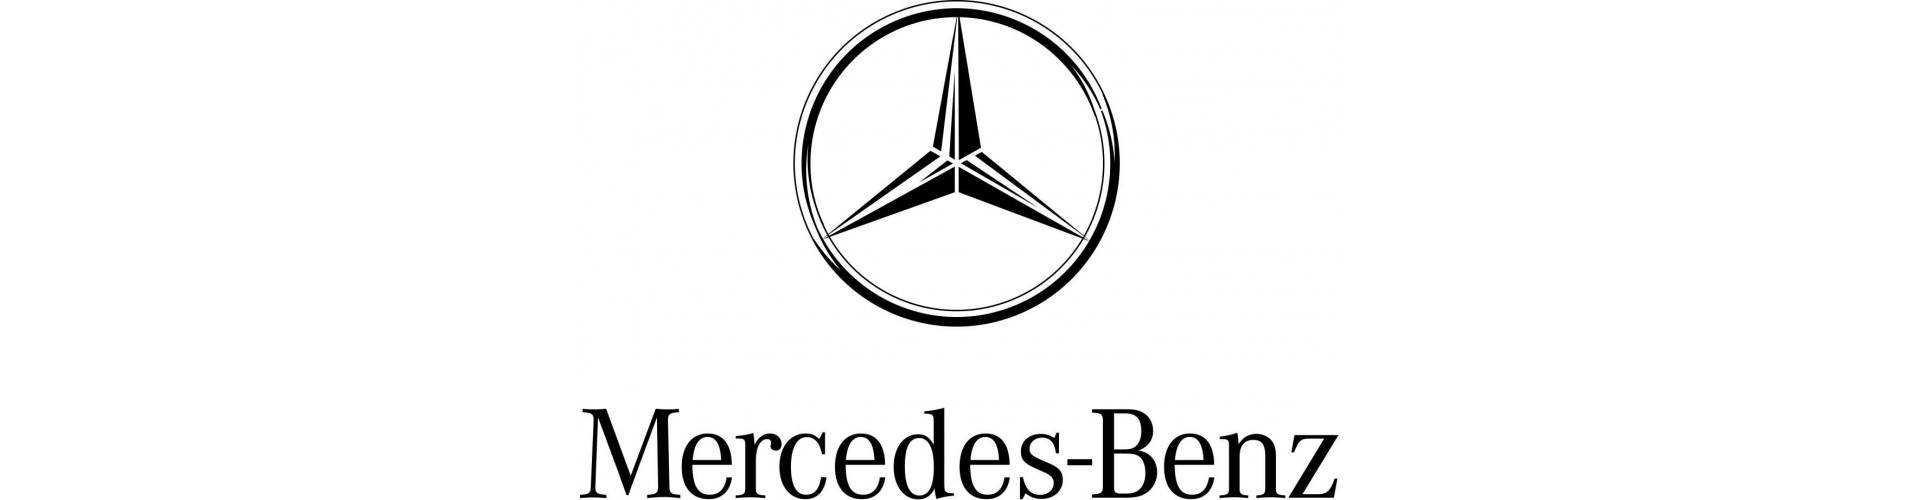 100 logo mercedes benz buy signs history of logo for Mercedes benz catalog online